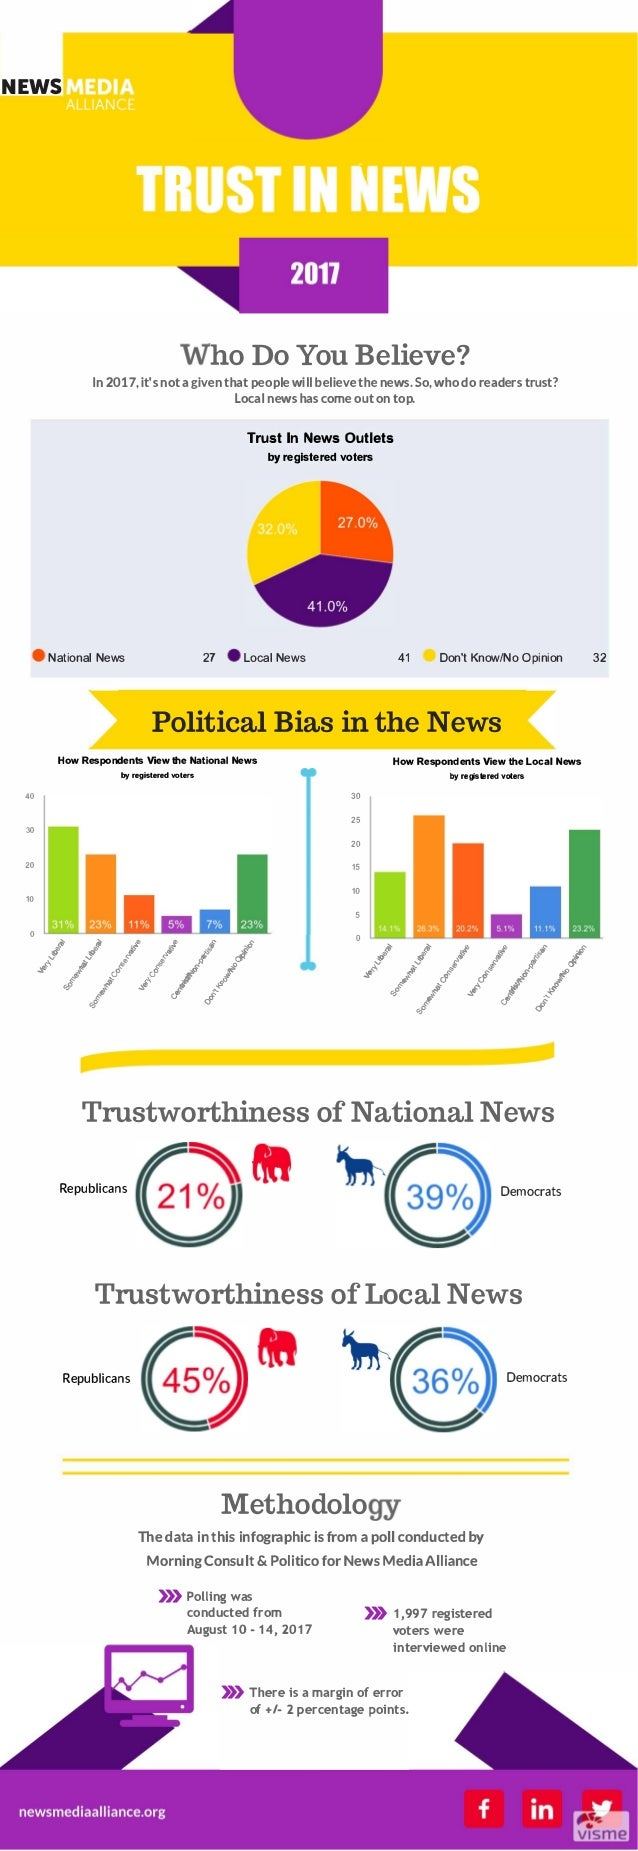 NEWS 40 30 20 10 0 I  ho Do You Believe? In2017, it's not a given that peoplewill believe the news. So, who do readers tru...